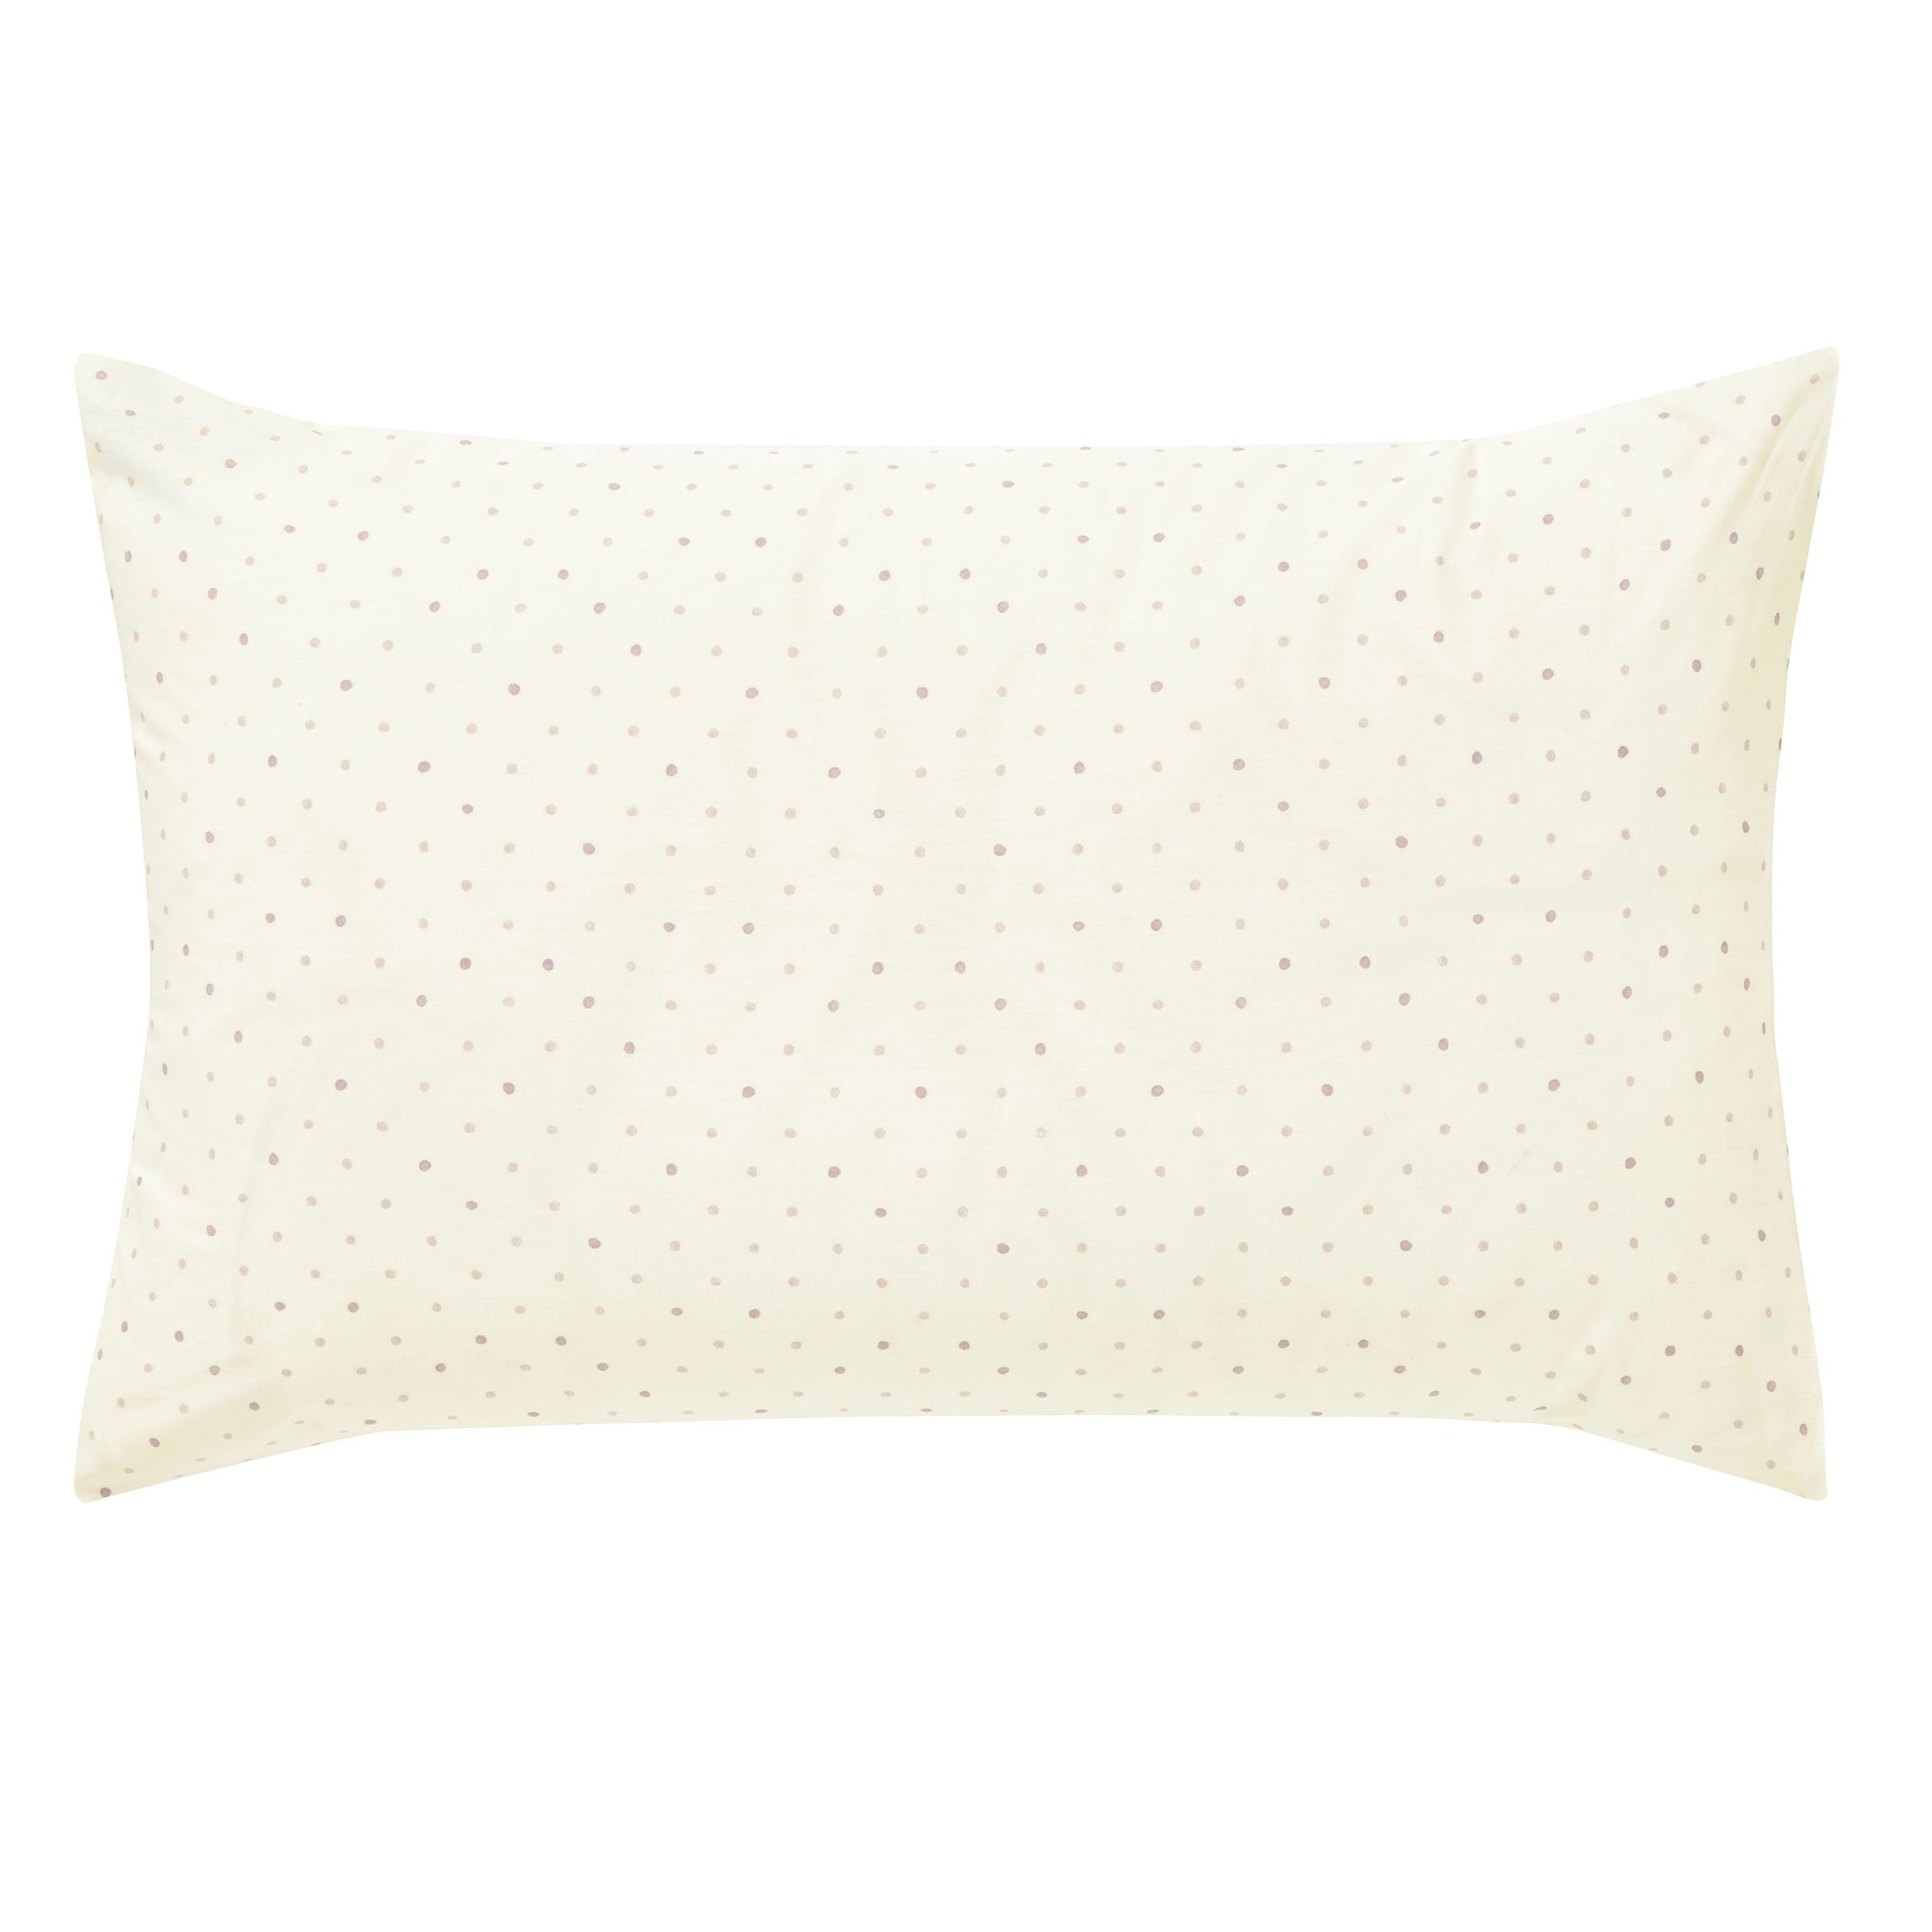 Sanderson Bedding Tournier Housewife Pillowcase Strawberry